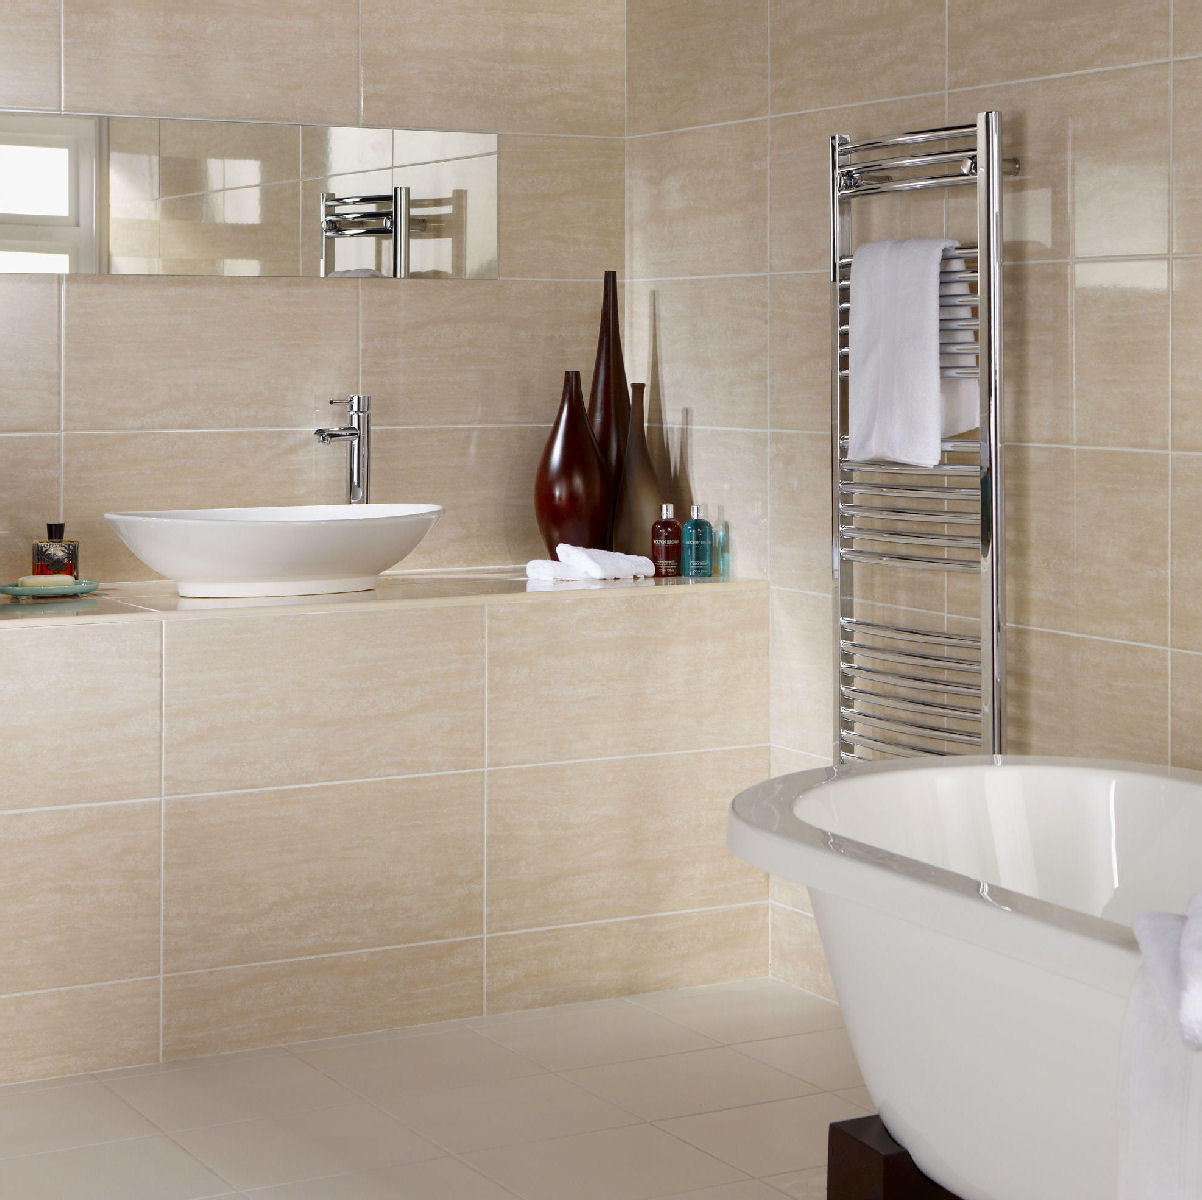 dorchester-travertine-sq-